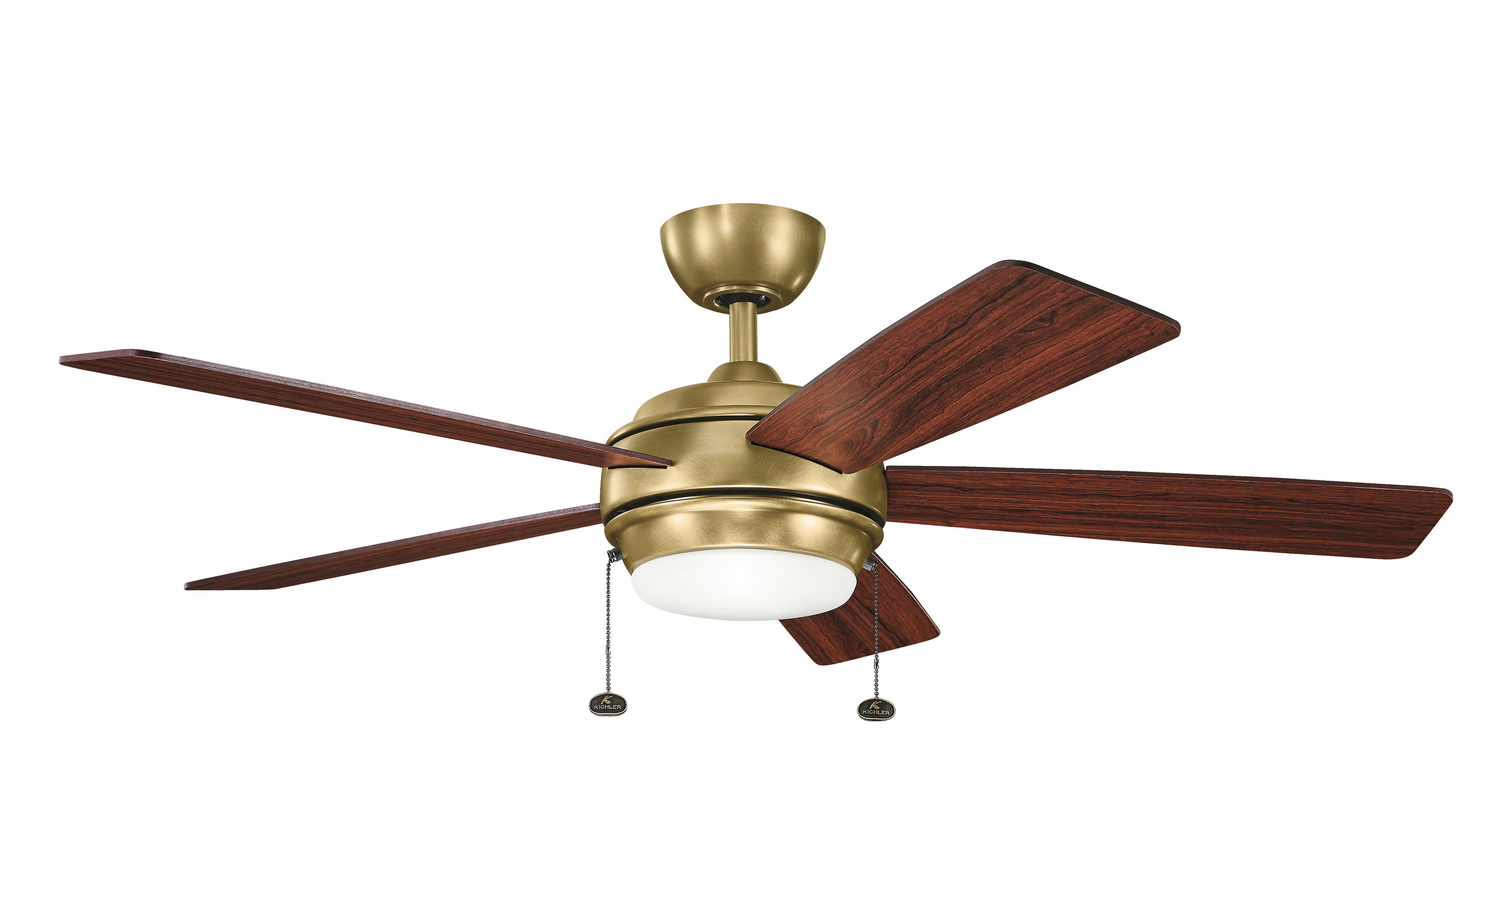 52 inchCeiling Fan from the Starkk collection by Kichler 300173NBR